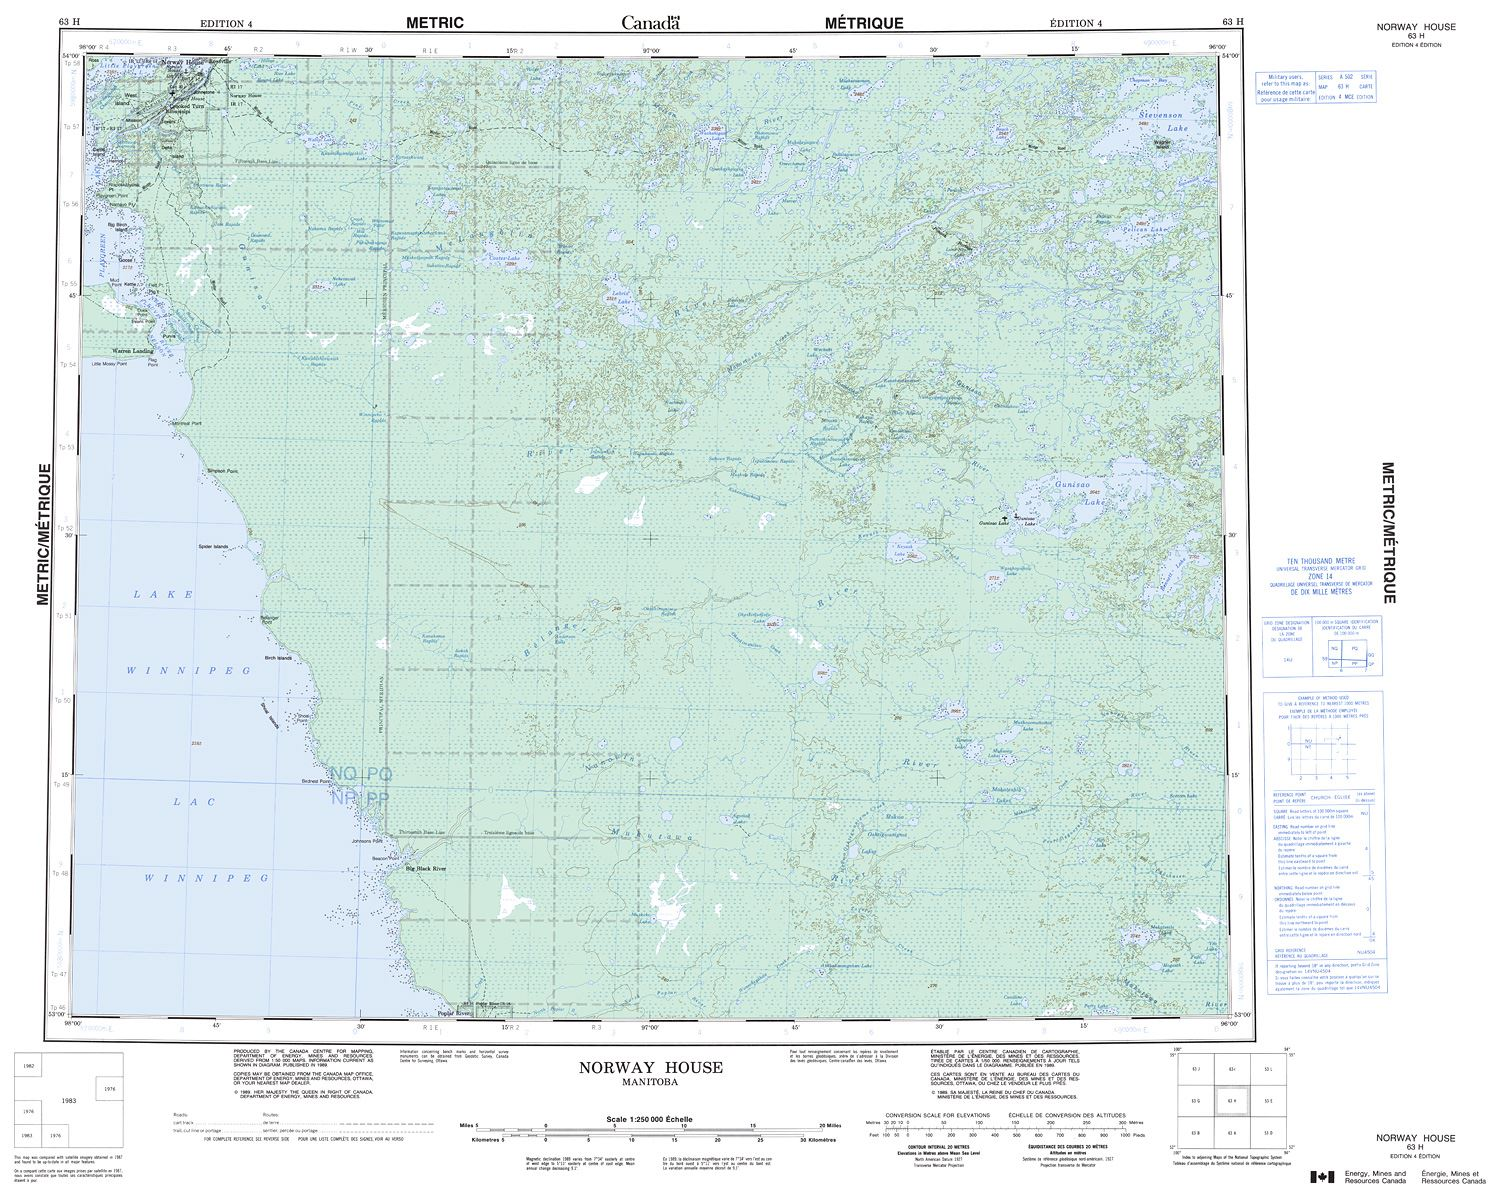 Topographic Map Of Norway.063h Norway House Topographic Map